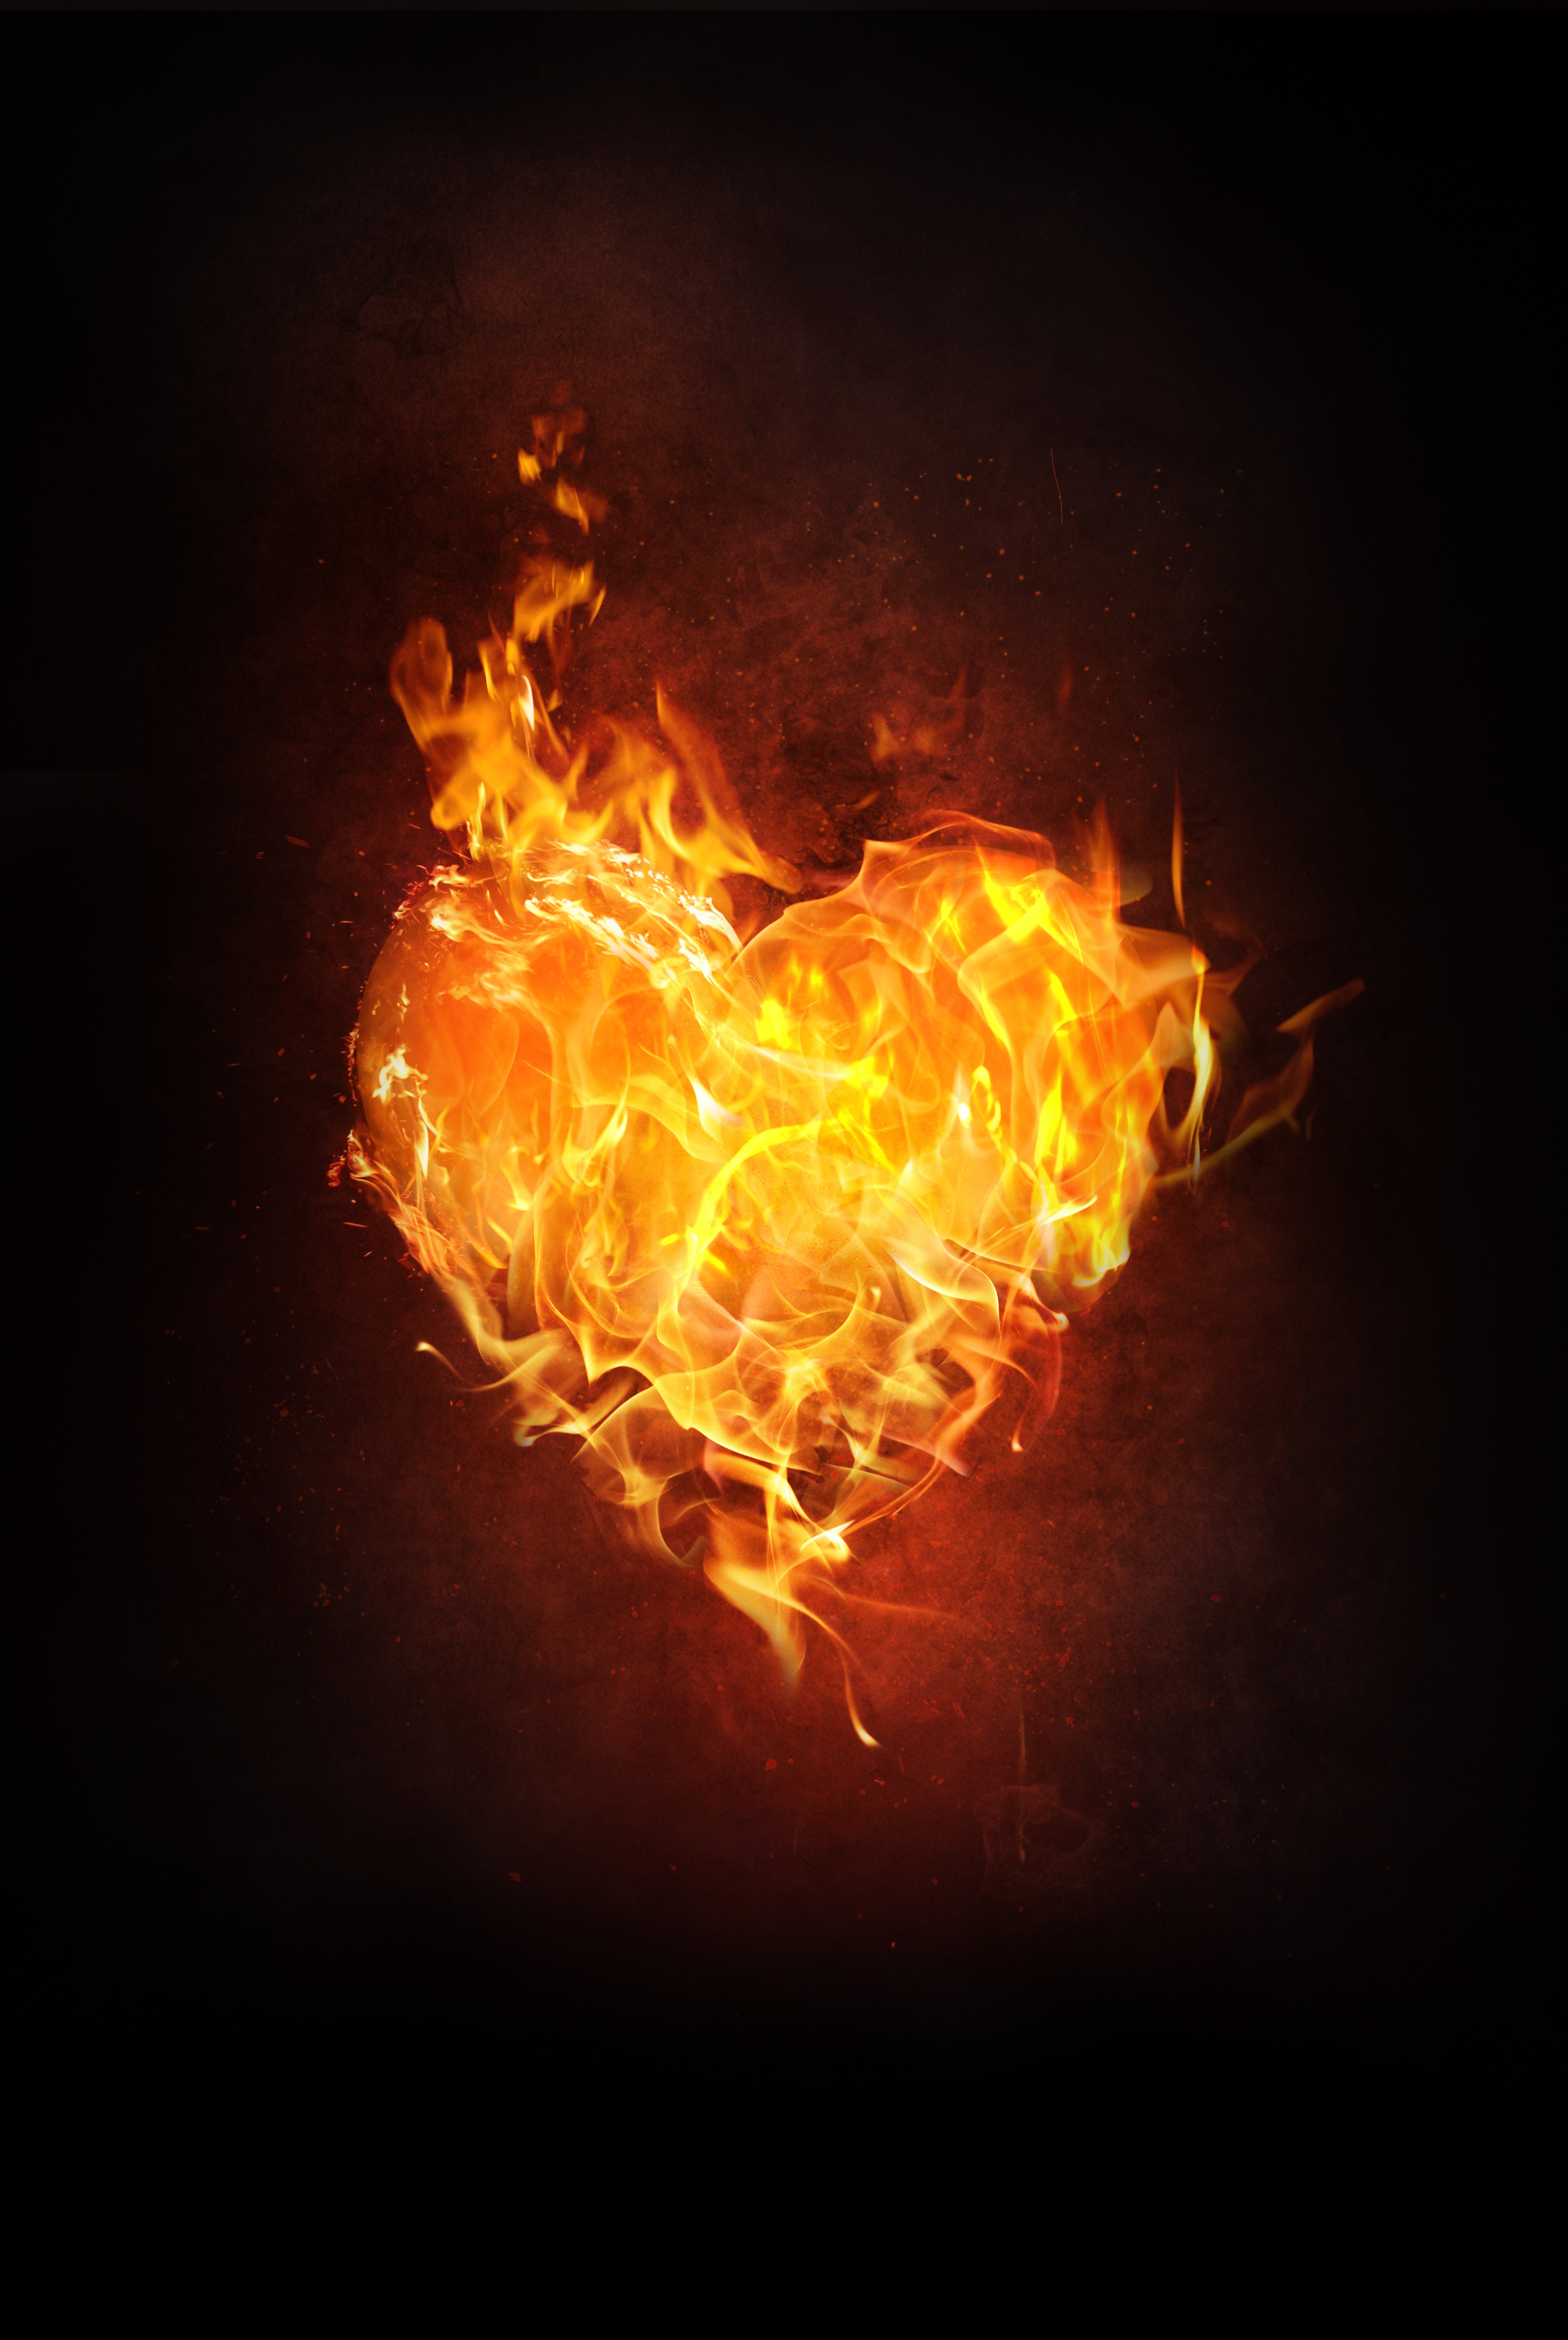 78653 download wallpaper Fire, Love, Dark, Flame, Heart screensavers and pictures for free